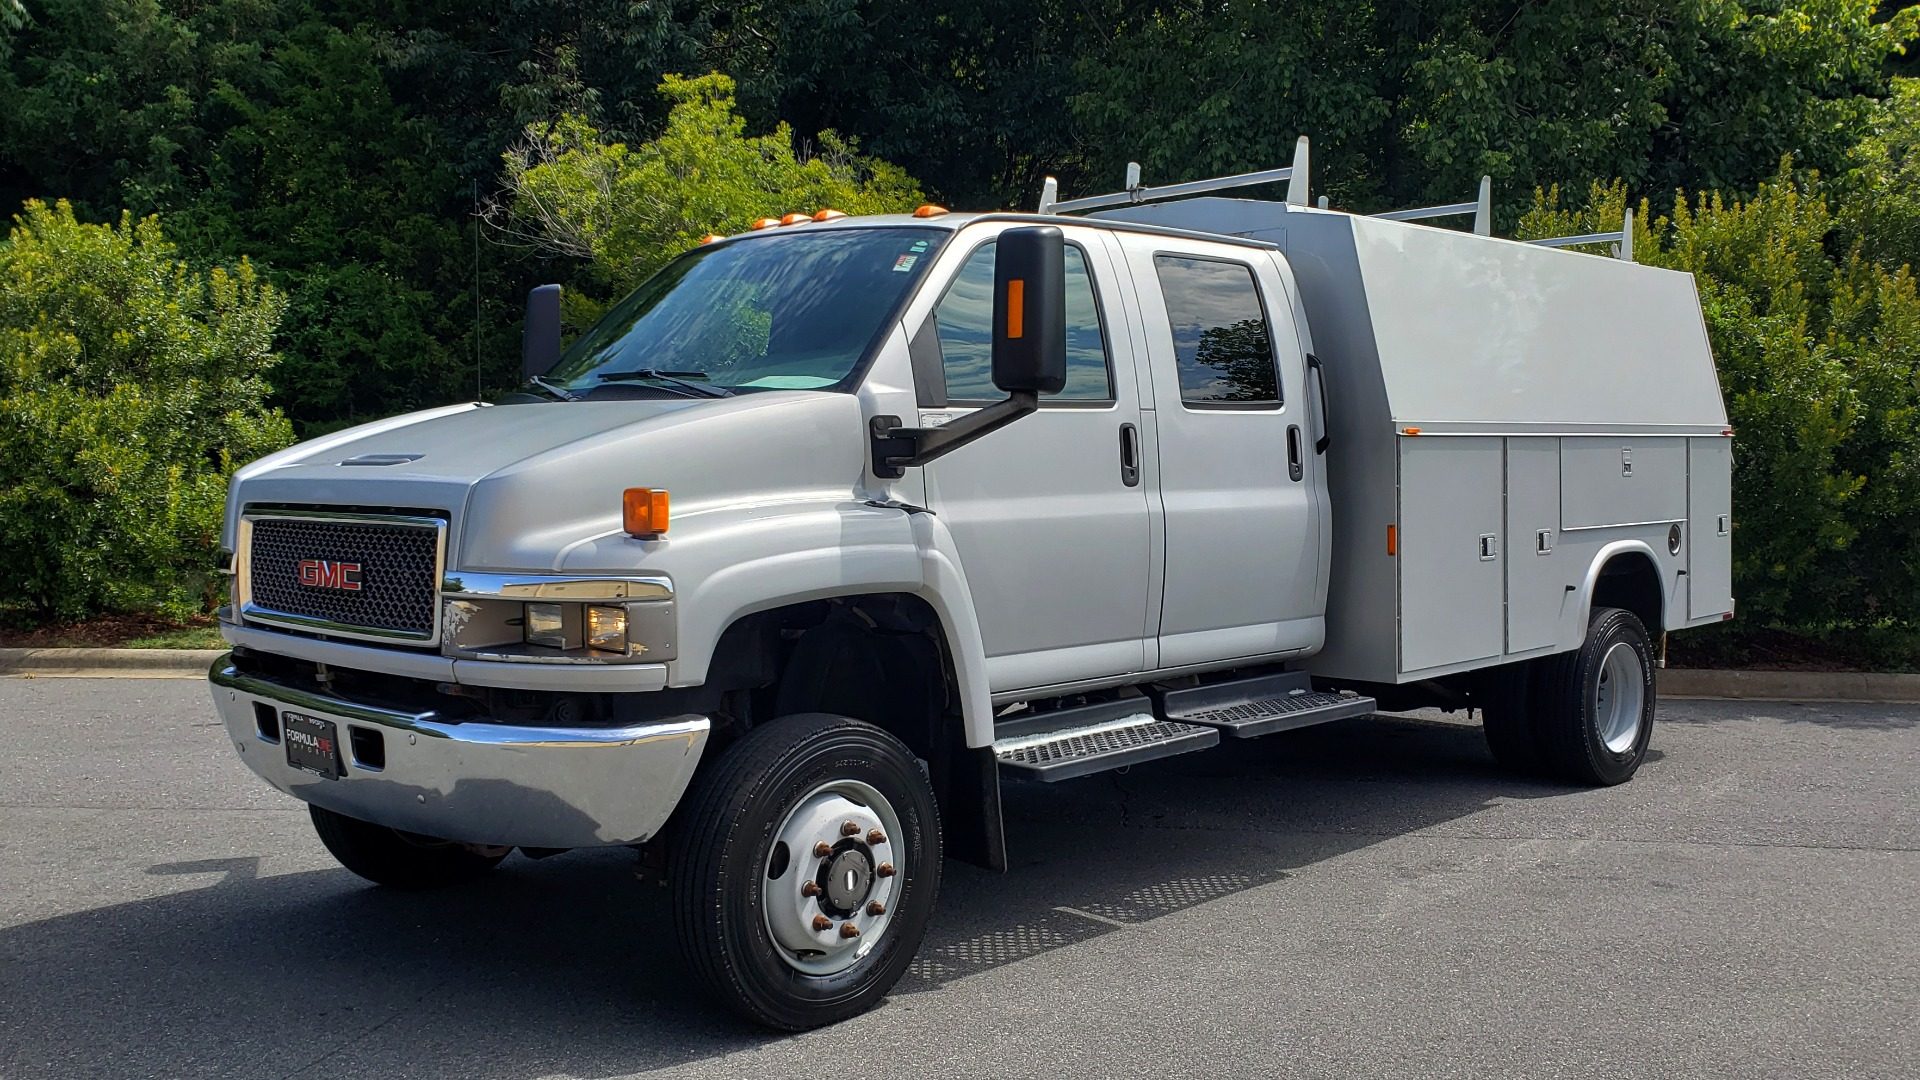 Used 2006 GMC TC4500 CREWCAB 4X4 6.6L DURAMAX / ALLISON TRANS / A/C / CRUISE CONTROL for sale Sold at Formula Imports in Charlotte NC 28227 1